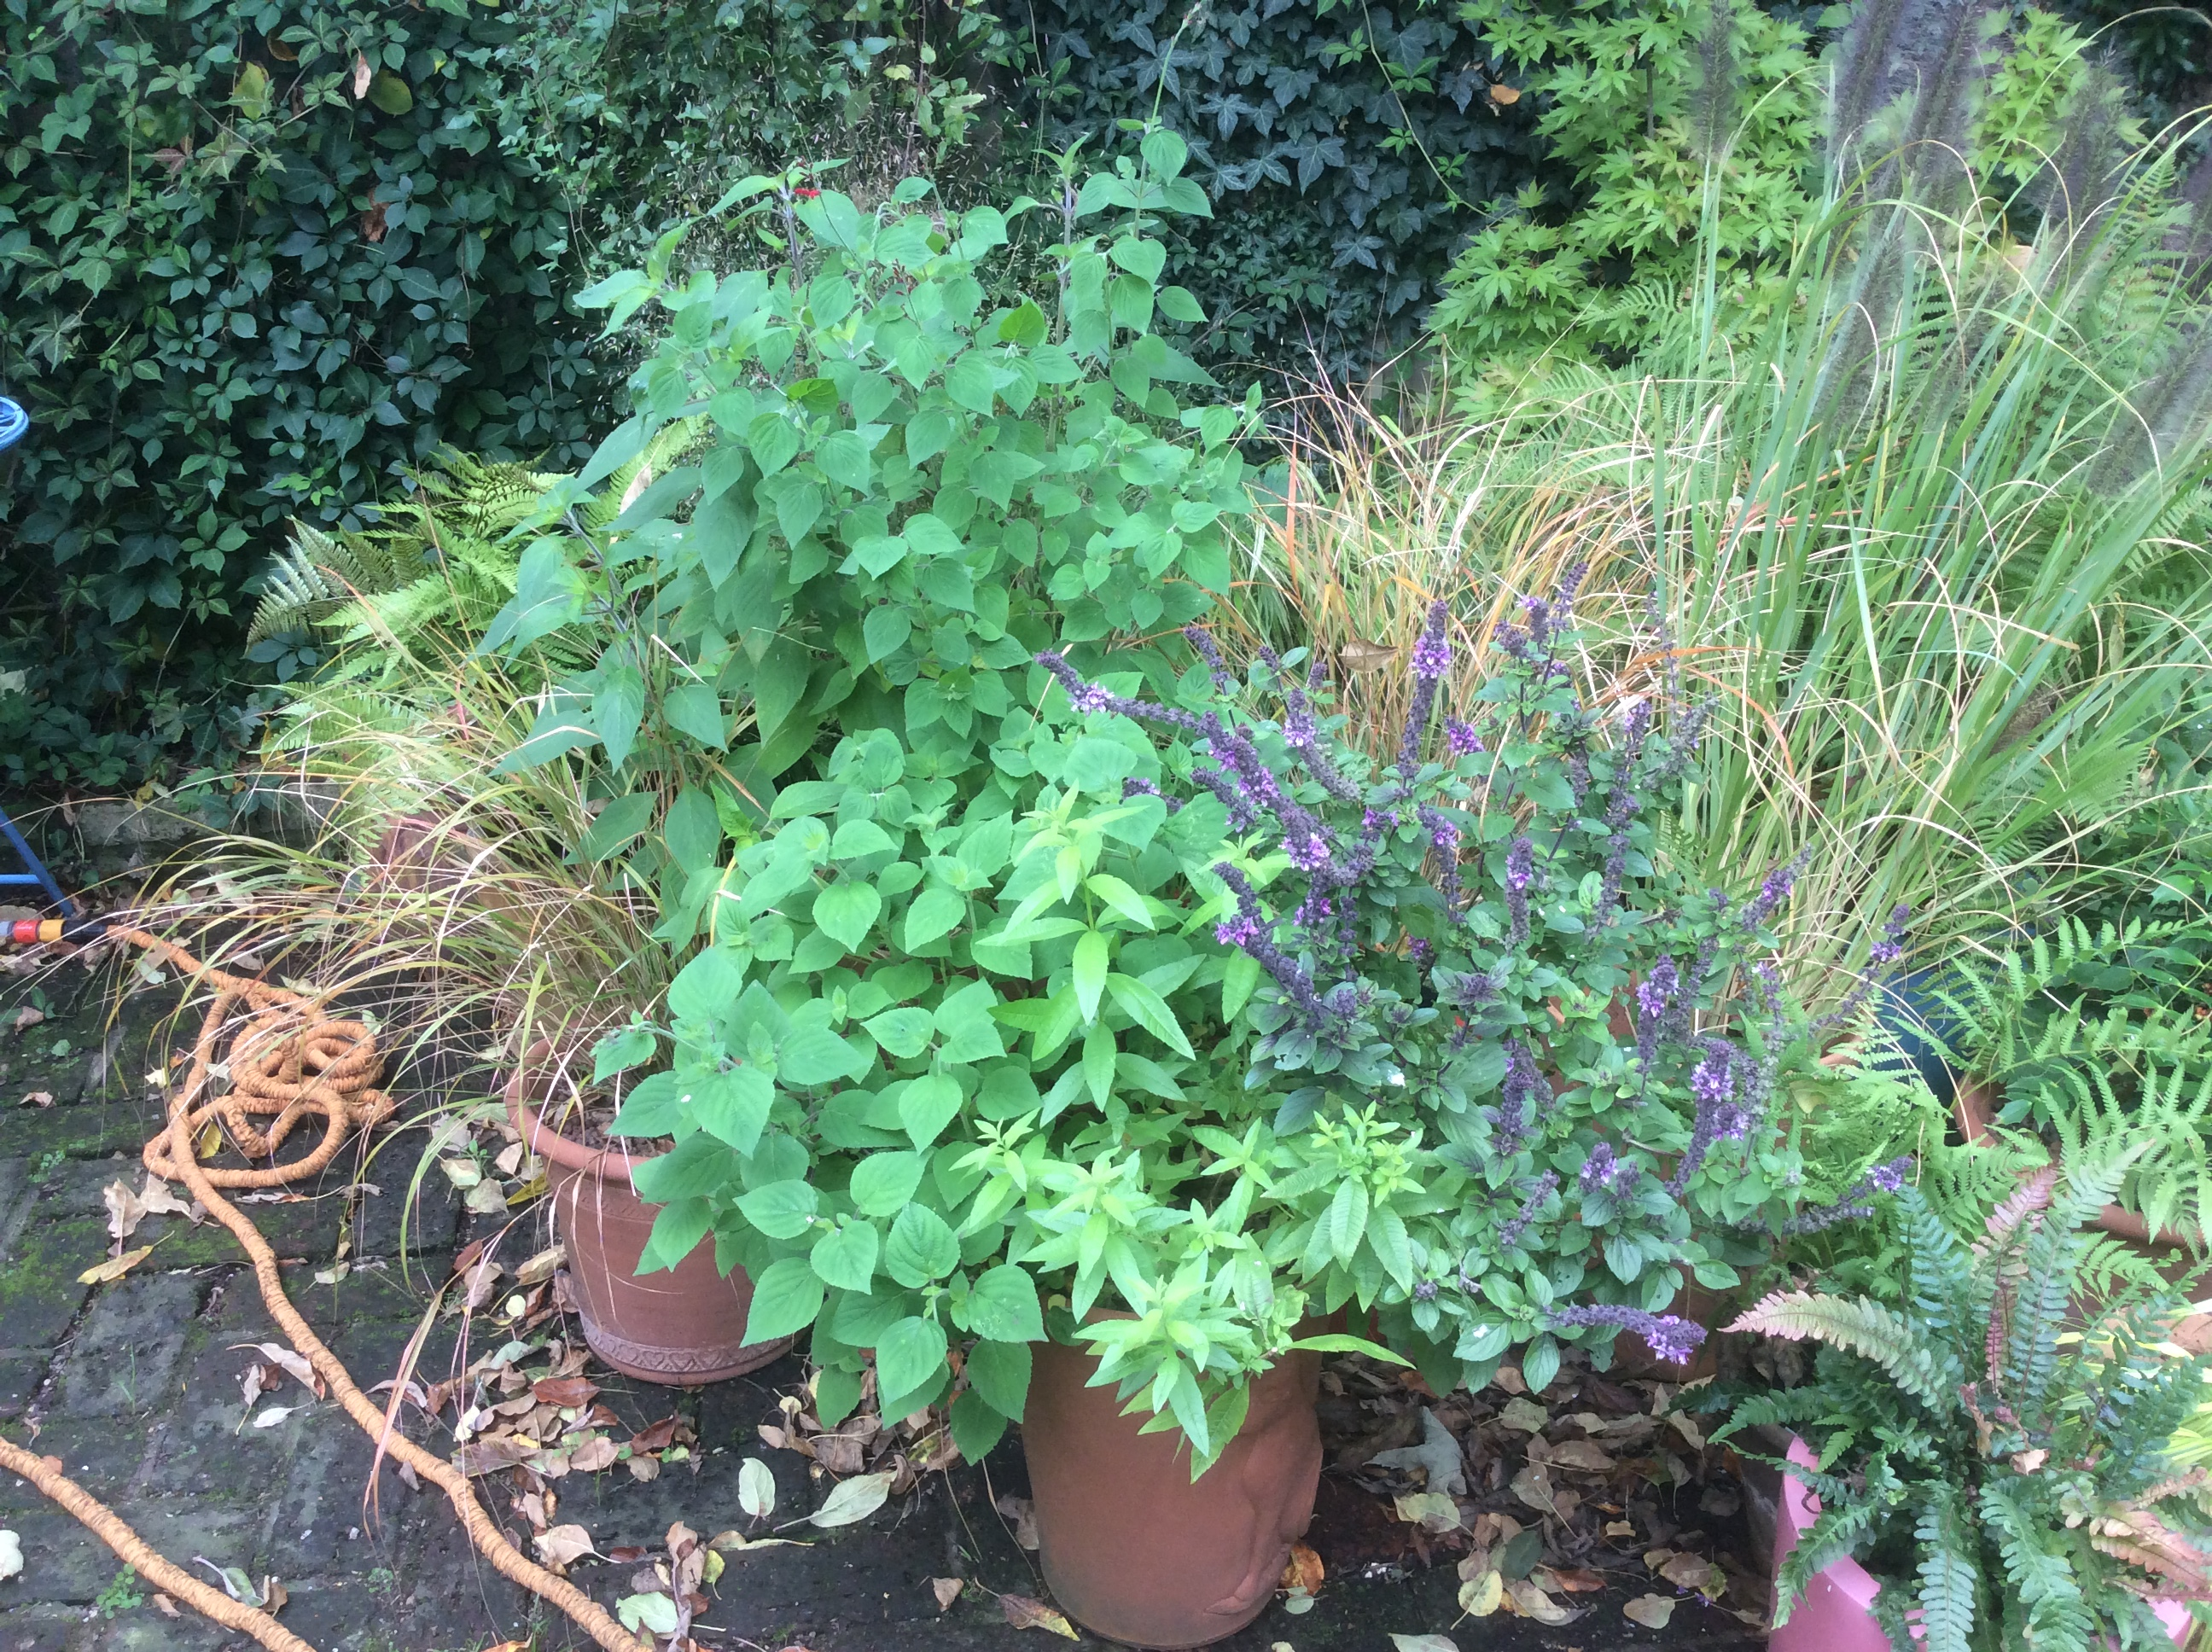 purple basil, lemon verbena, pineapple sage